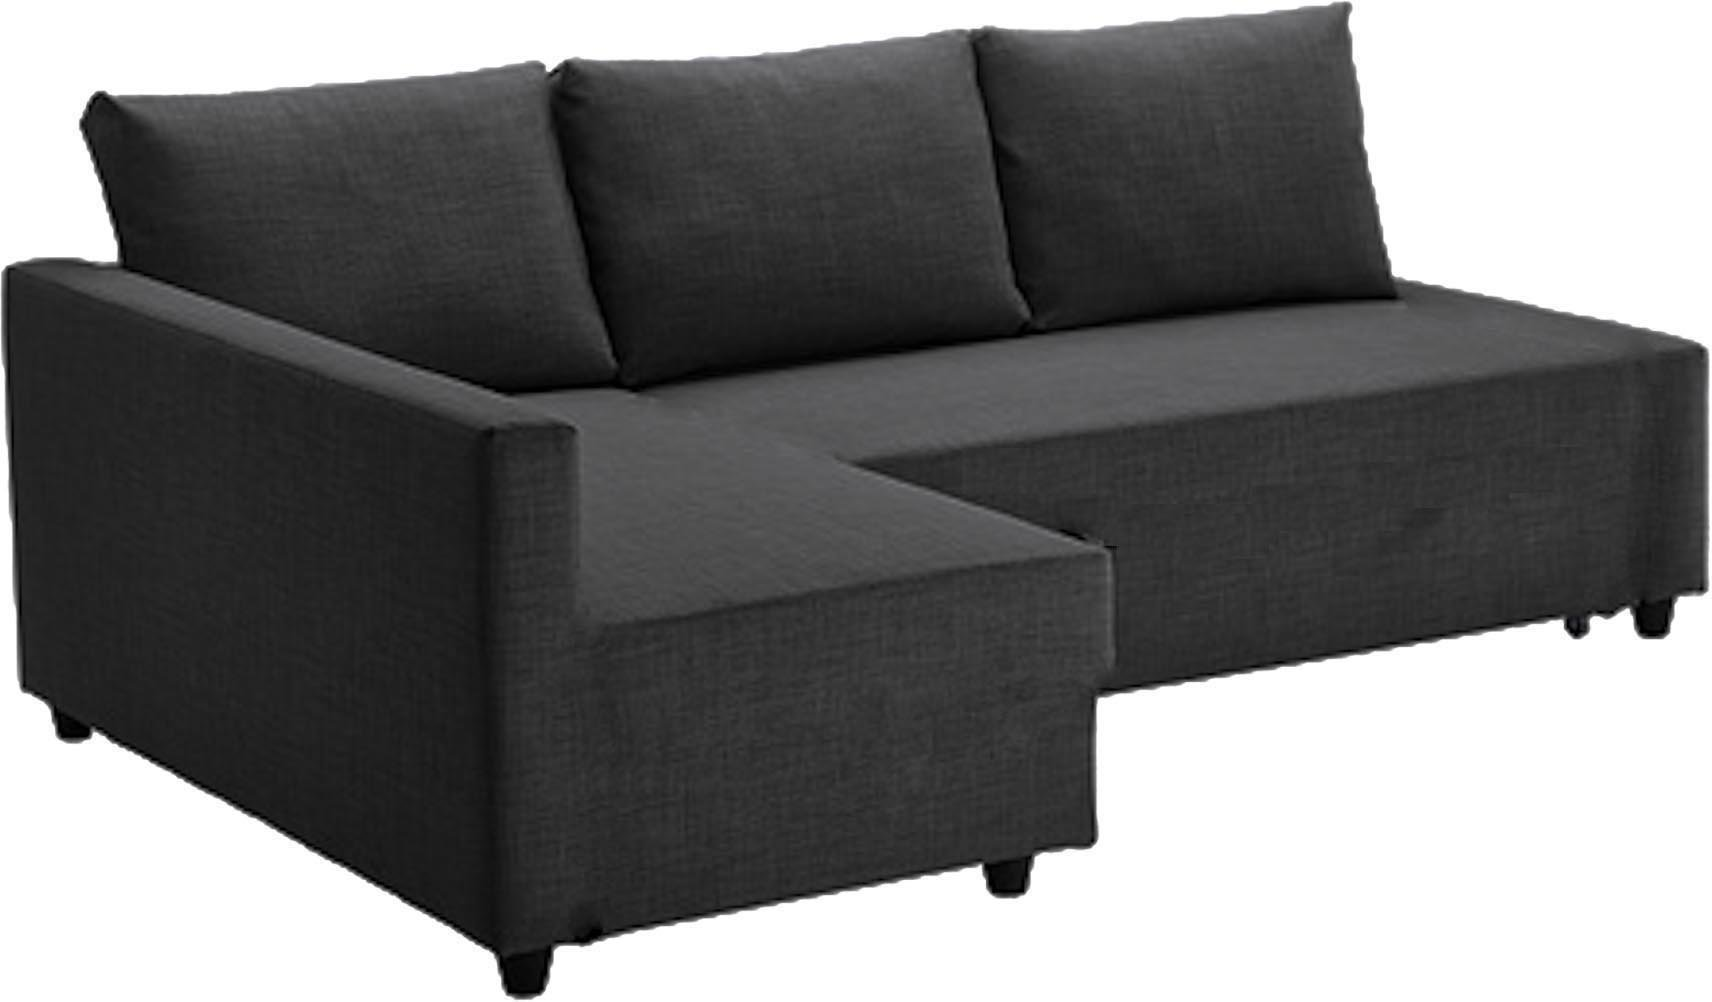 The Dark Gray Friheten Thick Cotton Sofa Cover Replacement is Custom Made for Ikea Friheten Sofa Bed, Or Corner, Or Sectional Slipcover. Sofa Cover Only! (Right ARM Longer) by Easy Slipcover